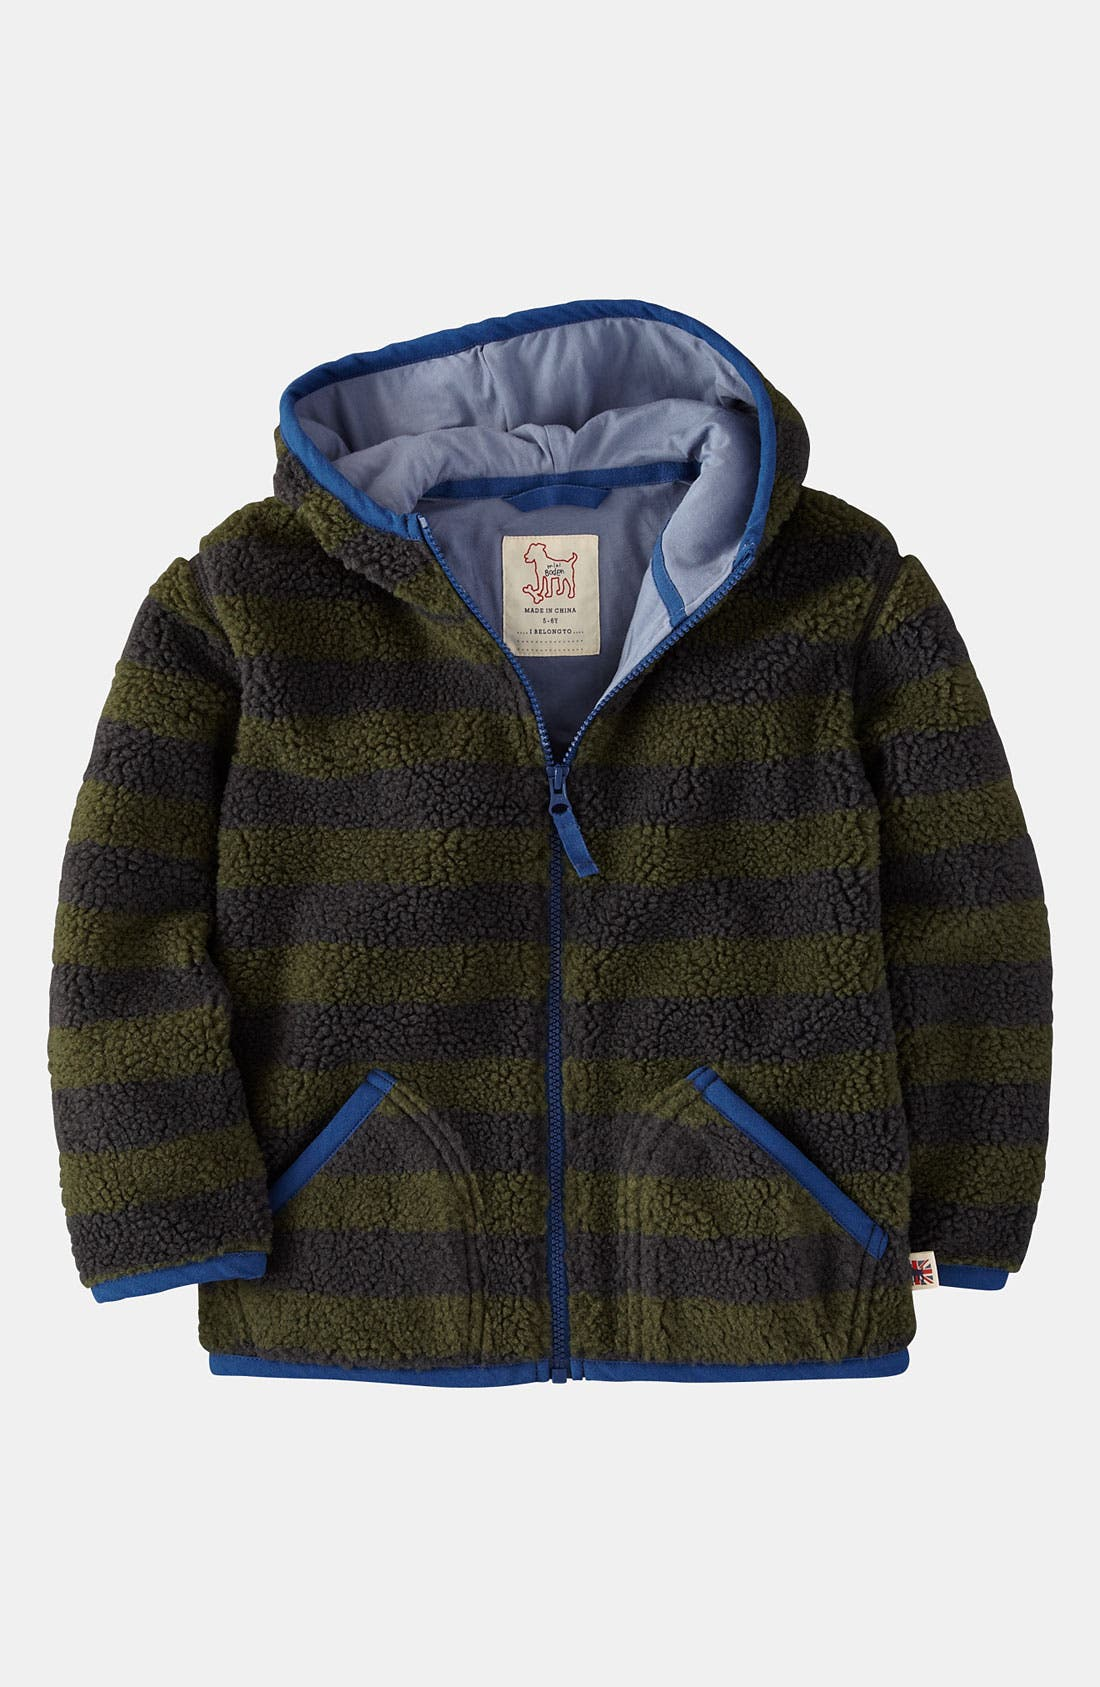 Main Image - Mini Boden Hoodie (Toddler)